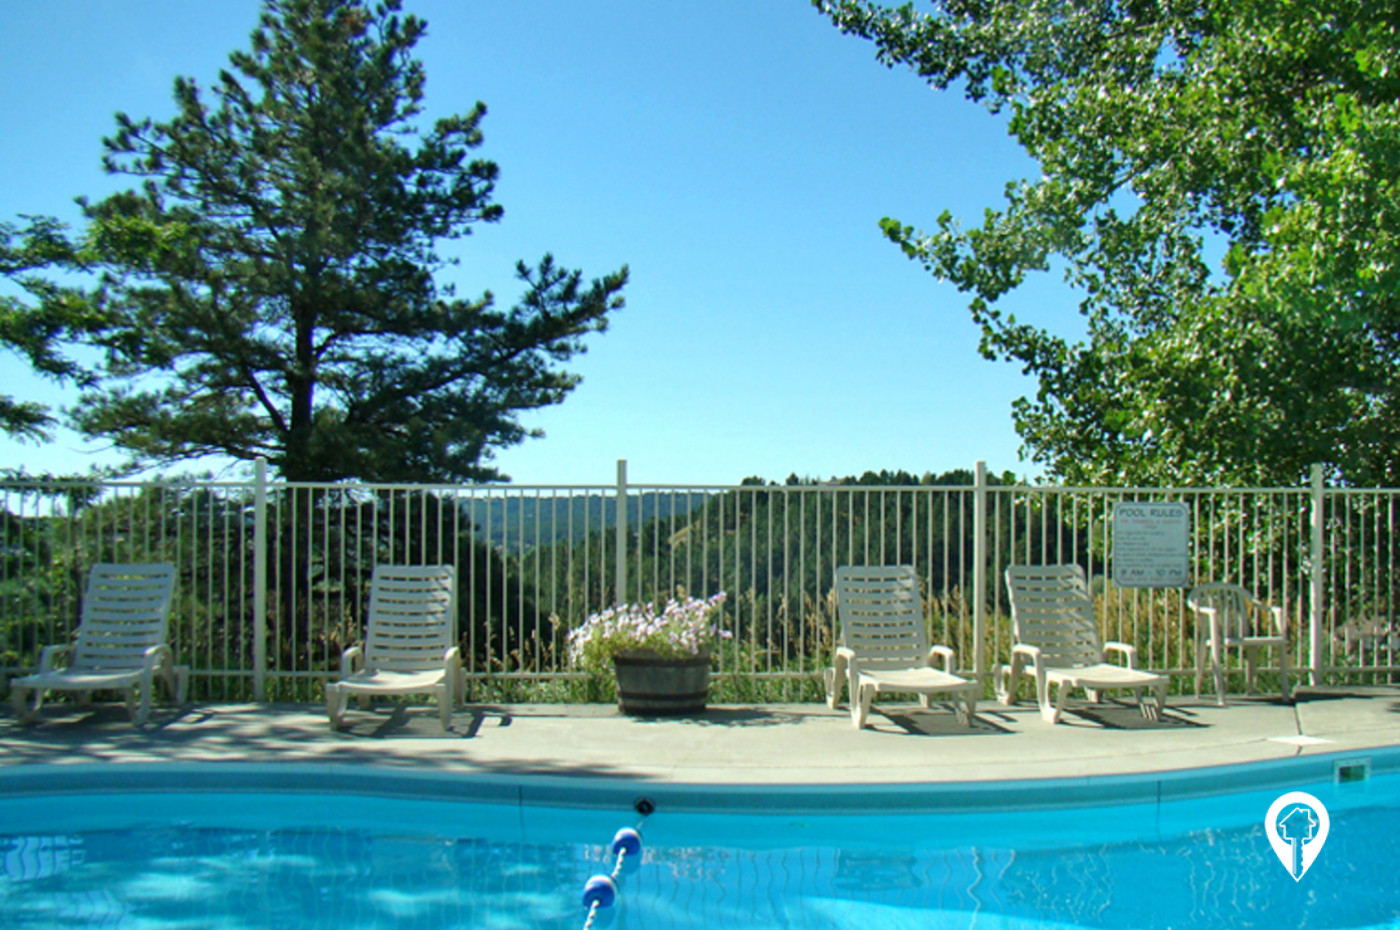 Pointe-West-Apartments-Relax-by-Pool-Take-View